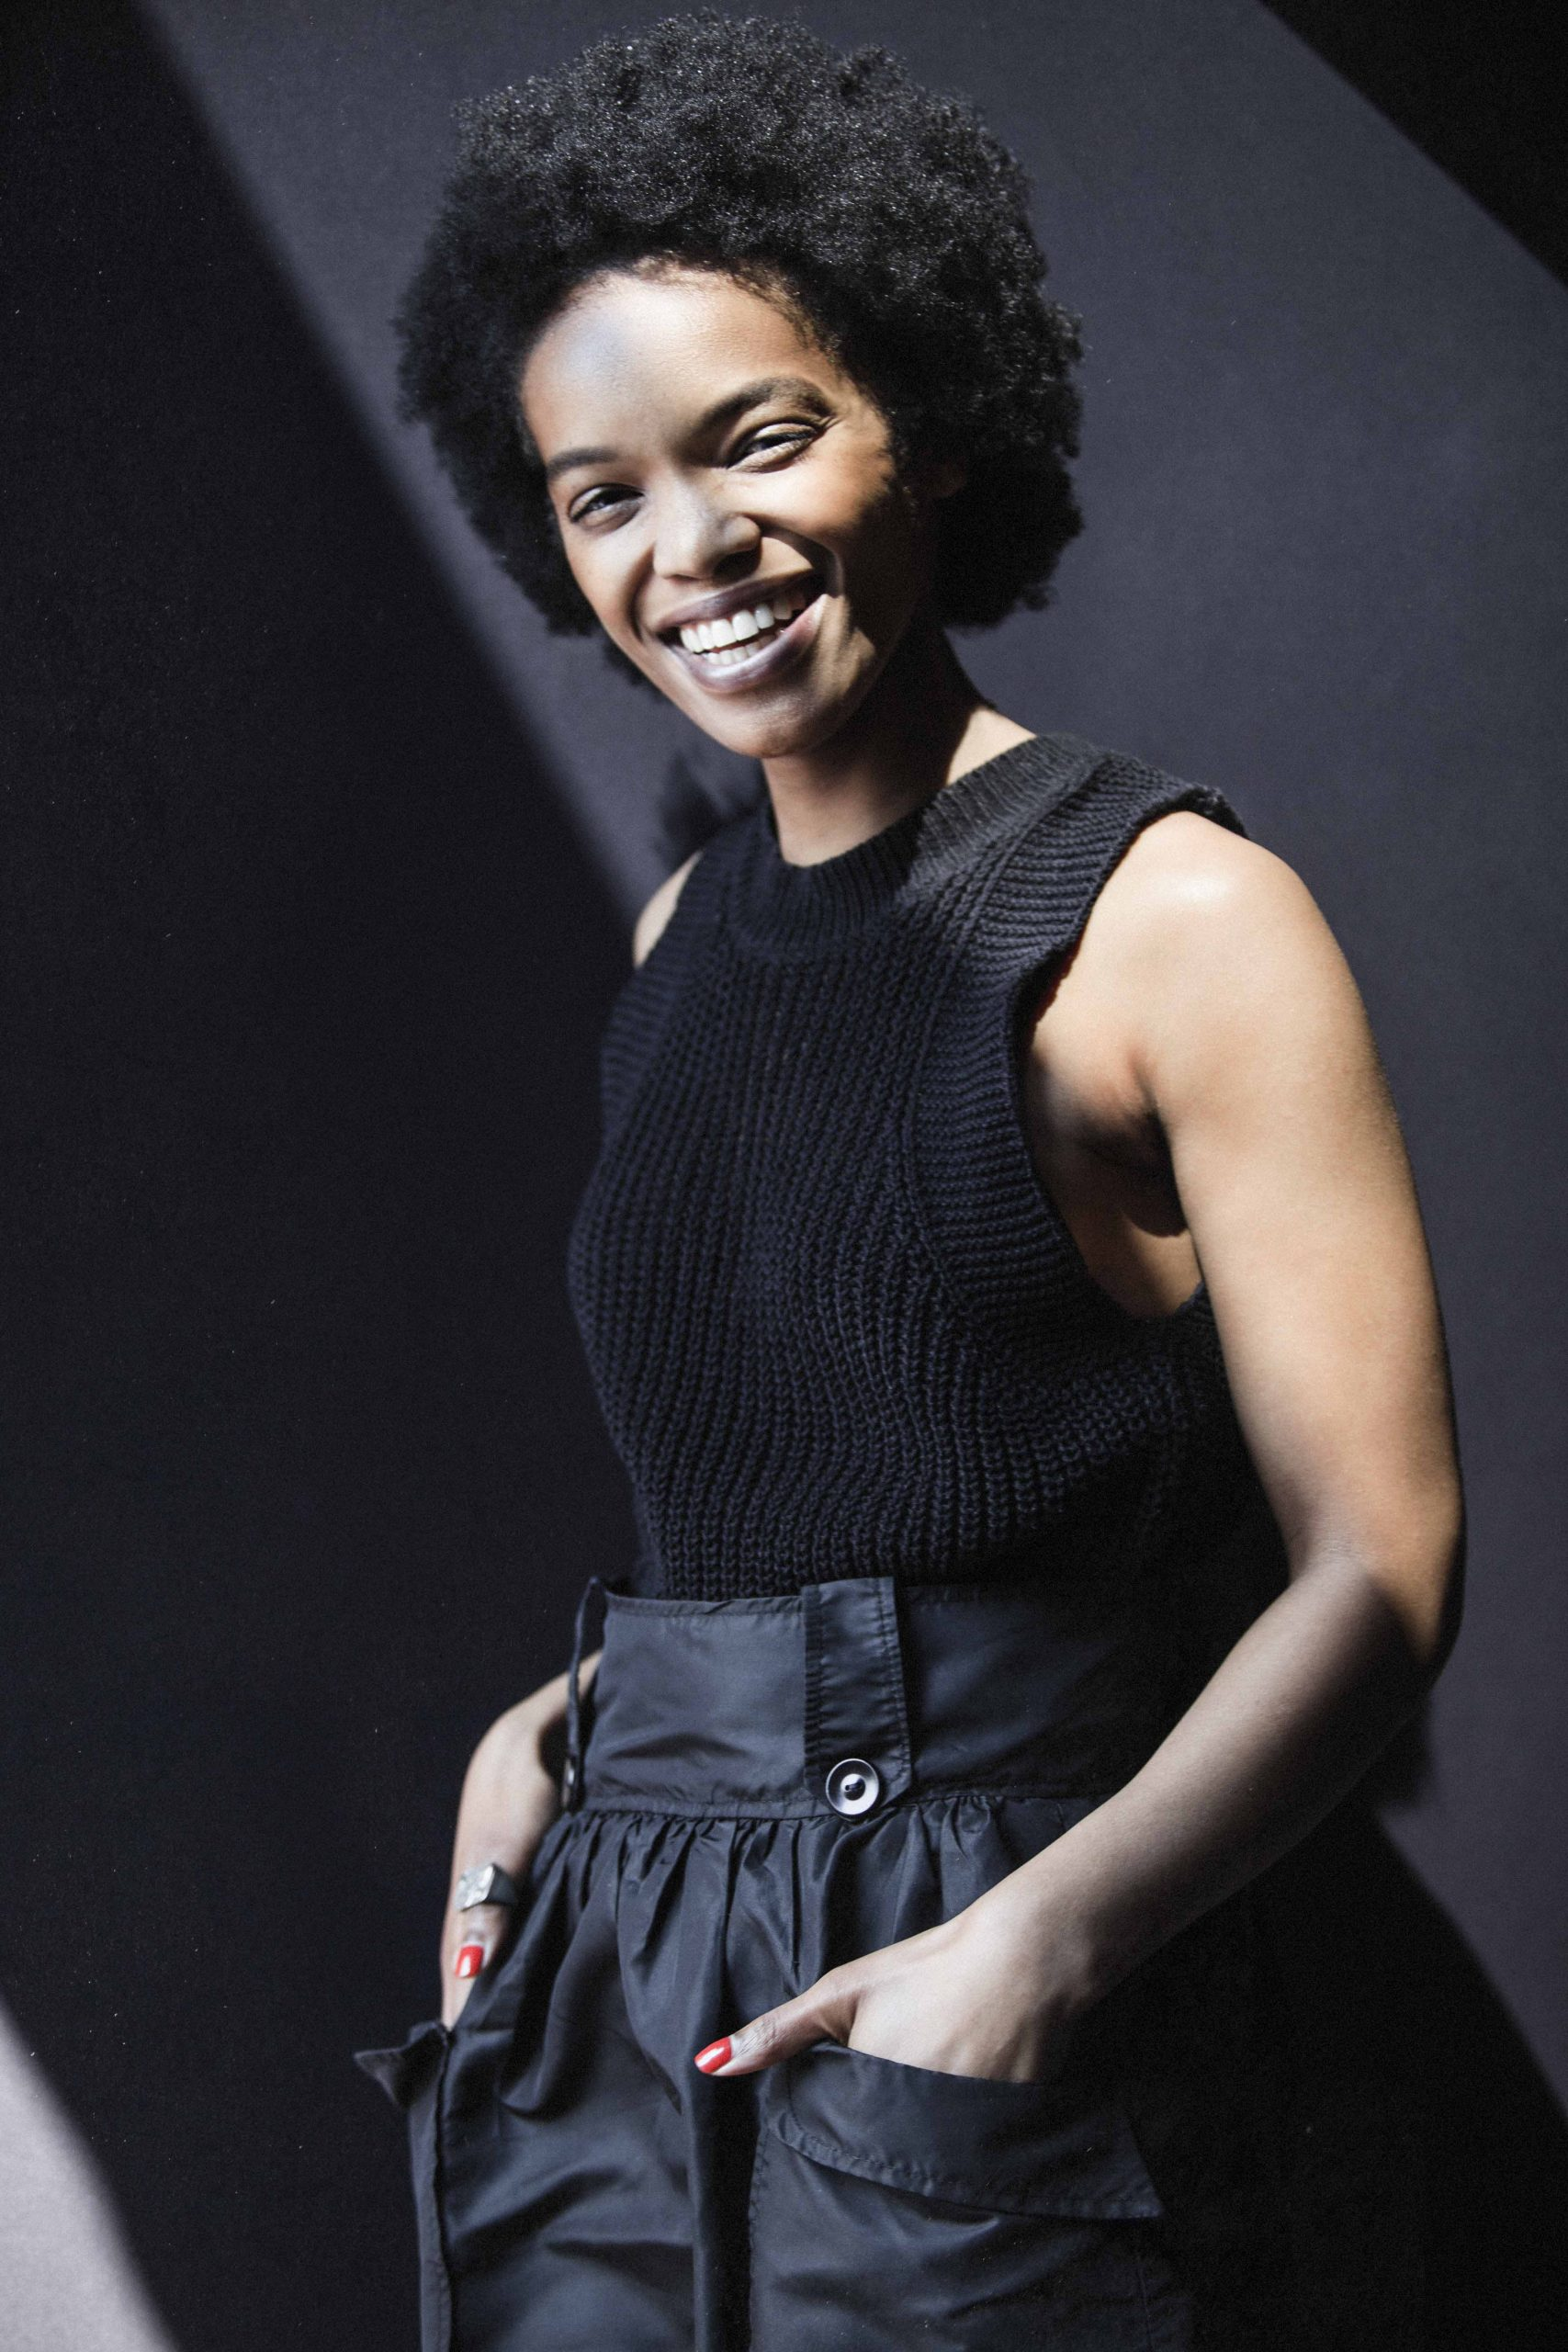 'The Future of the Art World Is Here': Johannesburg-Based Curator Londi Modiko on Her Mission to Empower Black Women Creatives